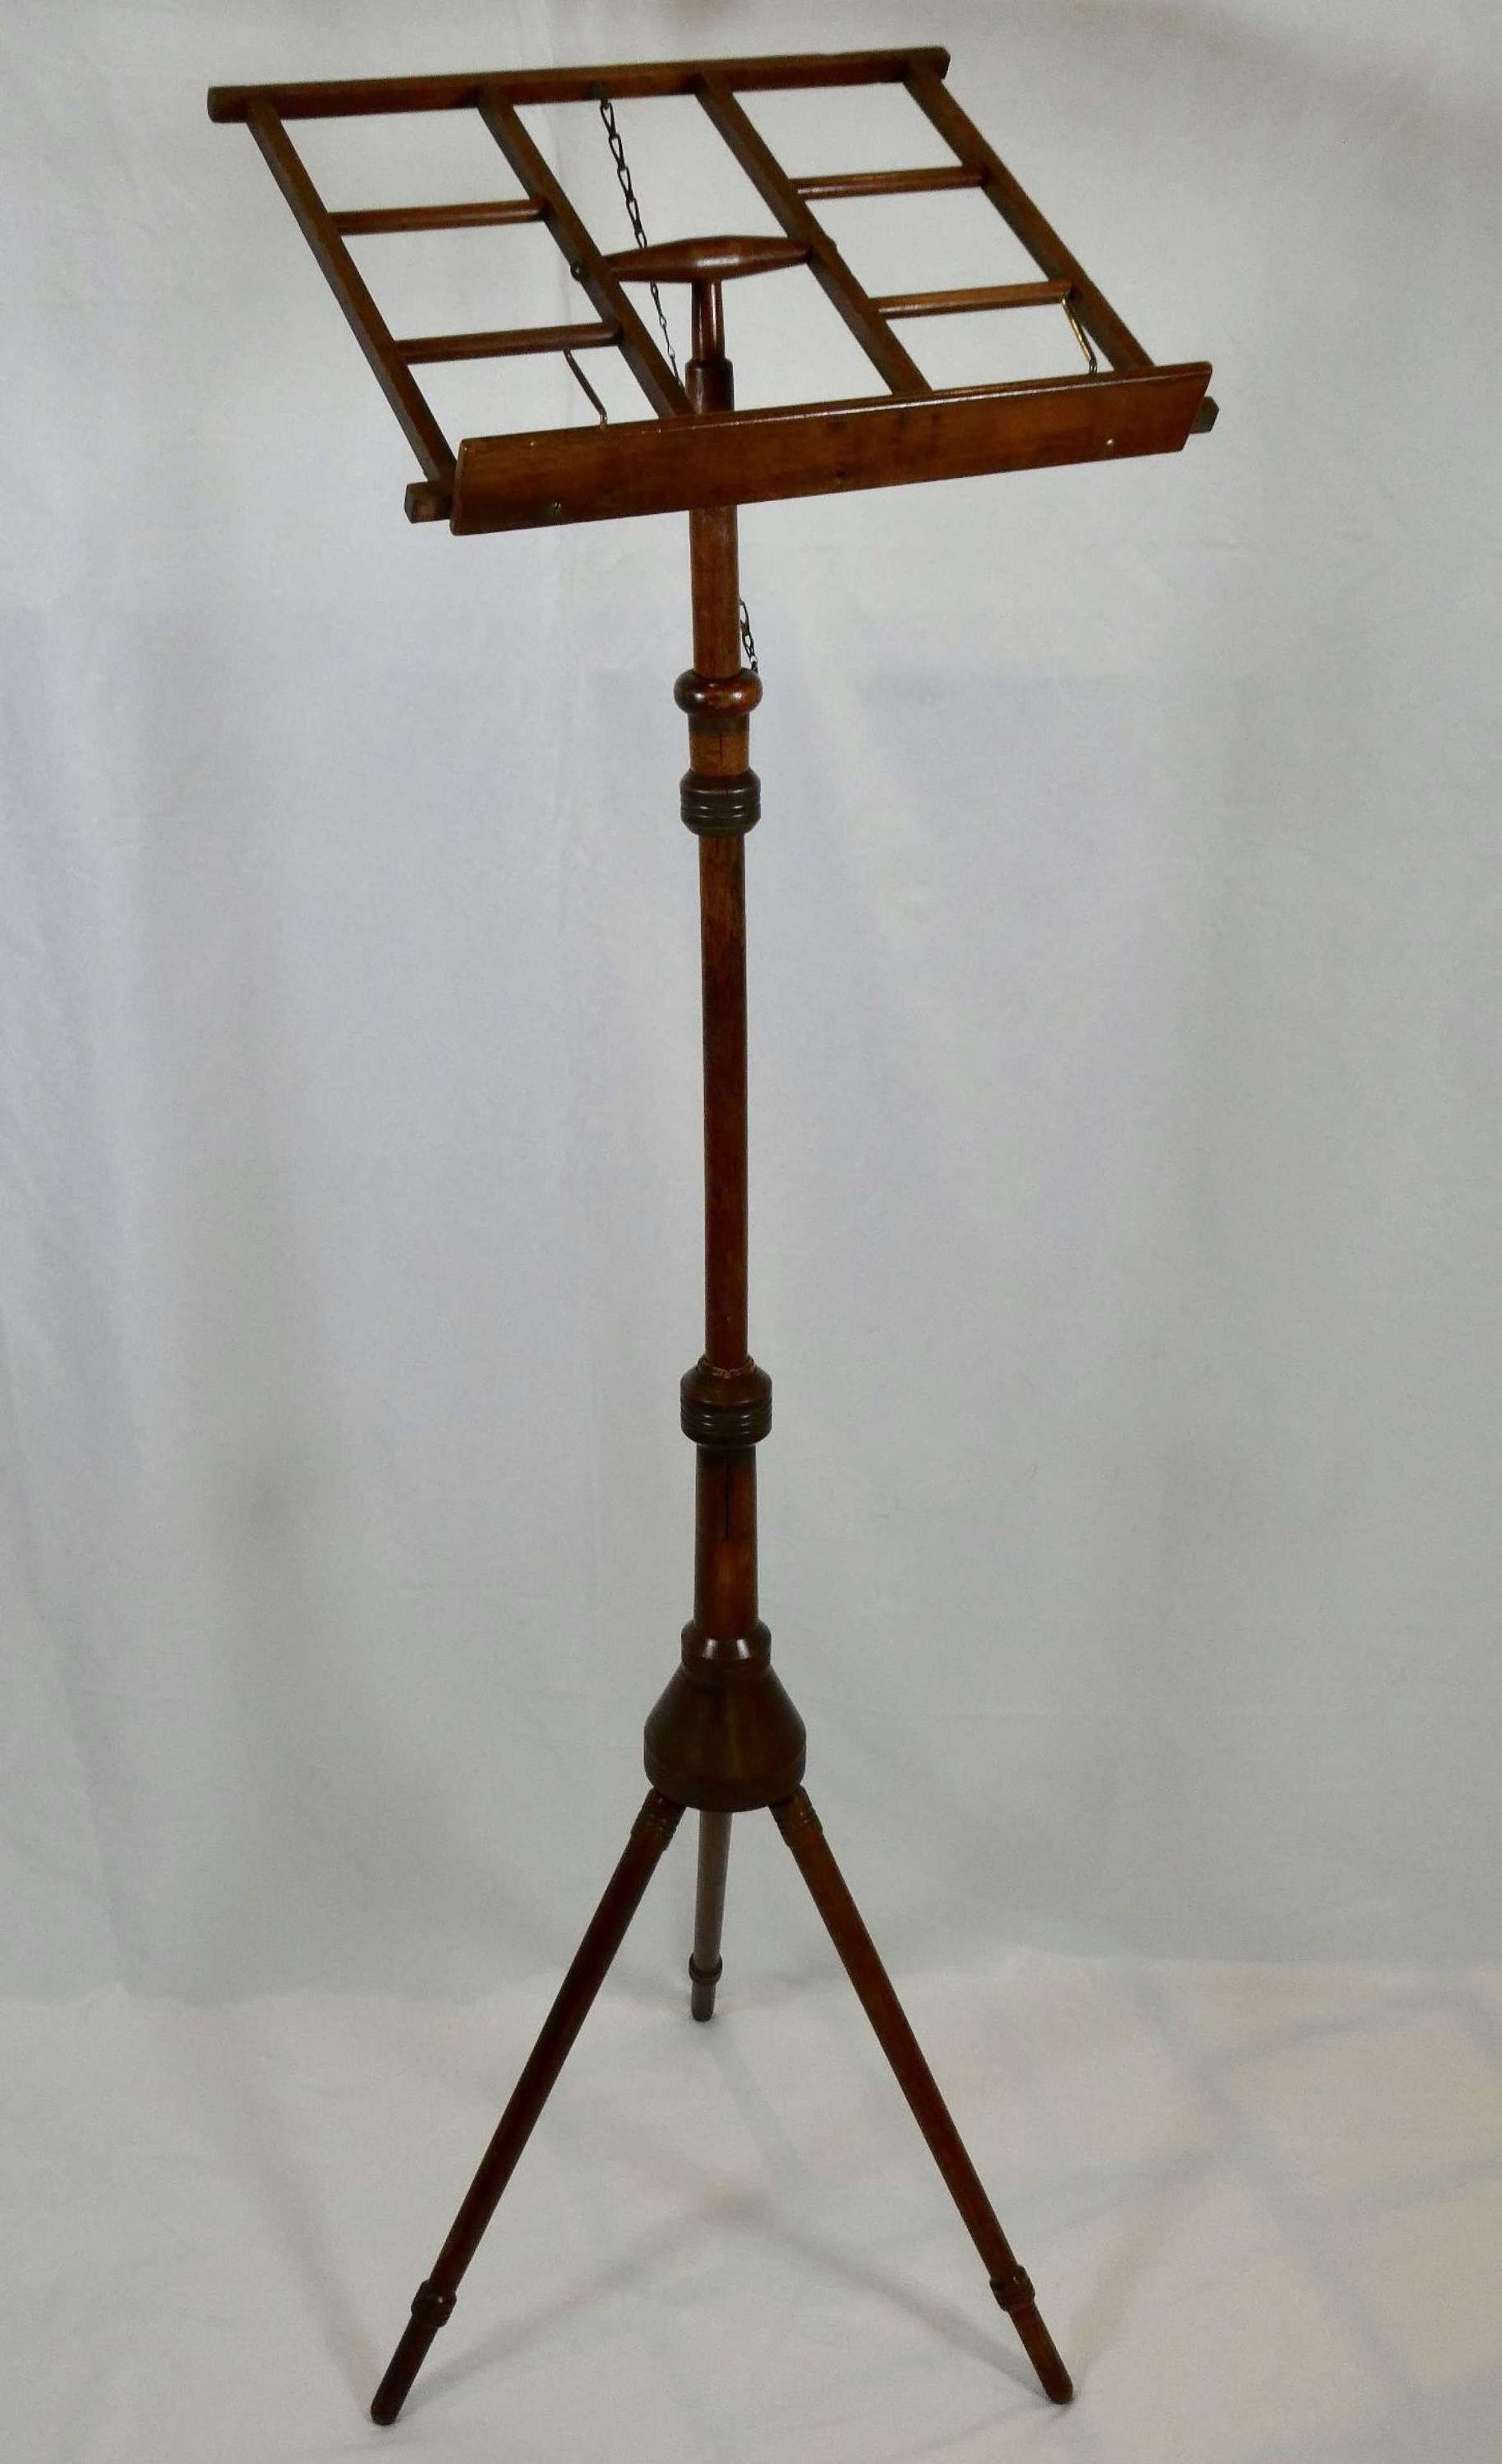 19th Century Campaign Music Stand